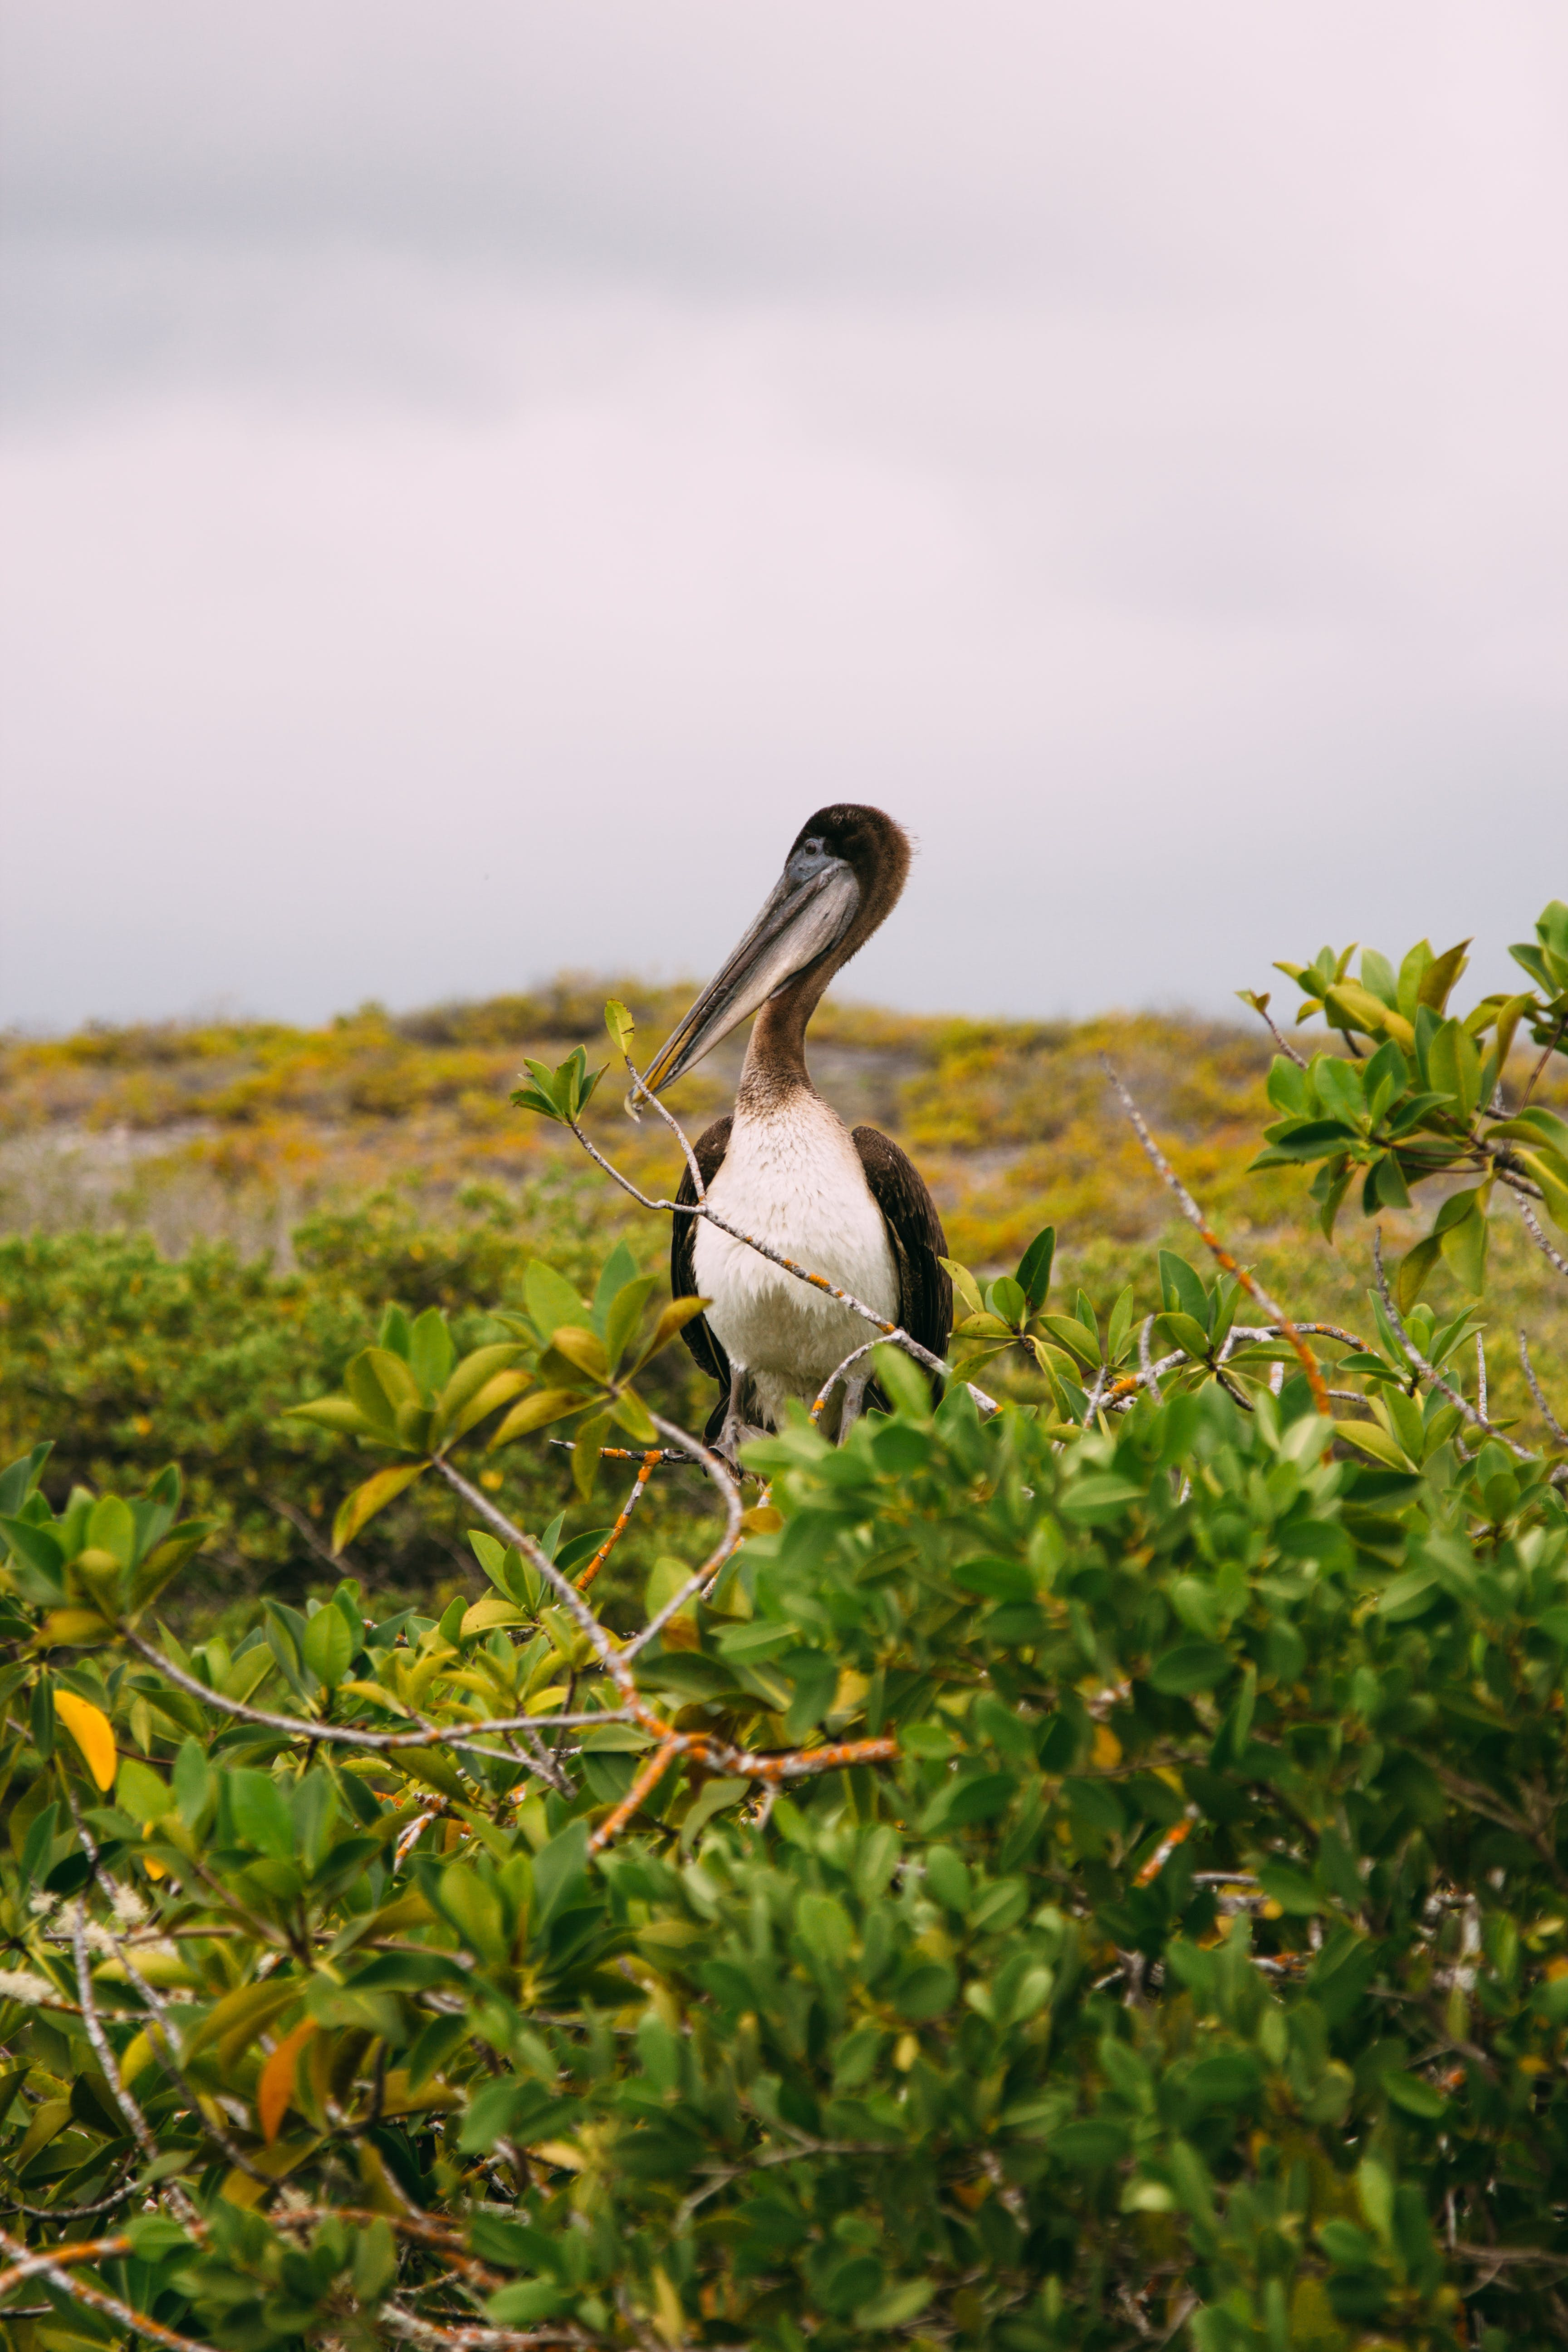 Black and White Bird Surrounded by Plants